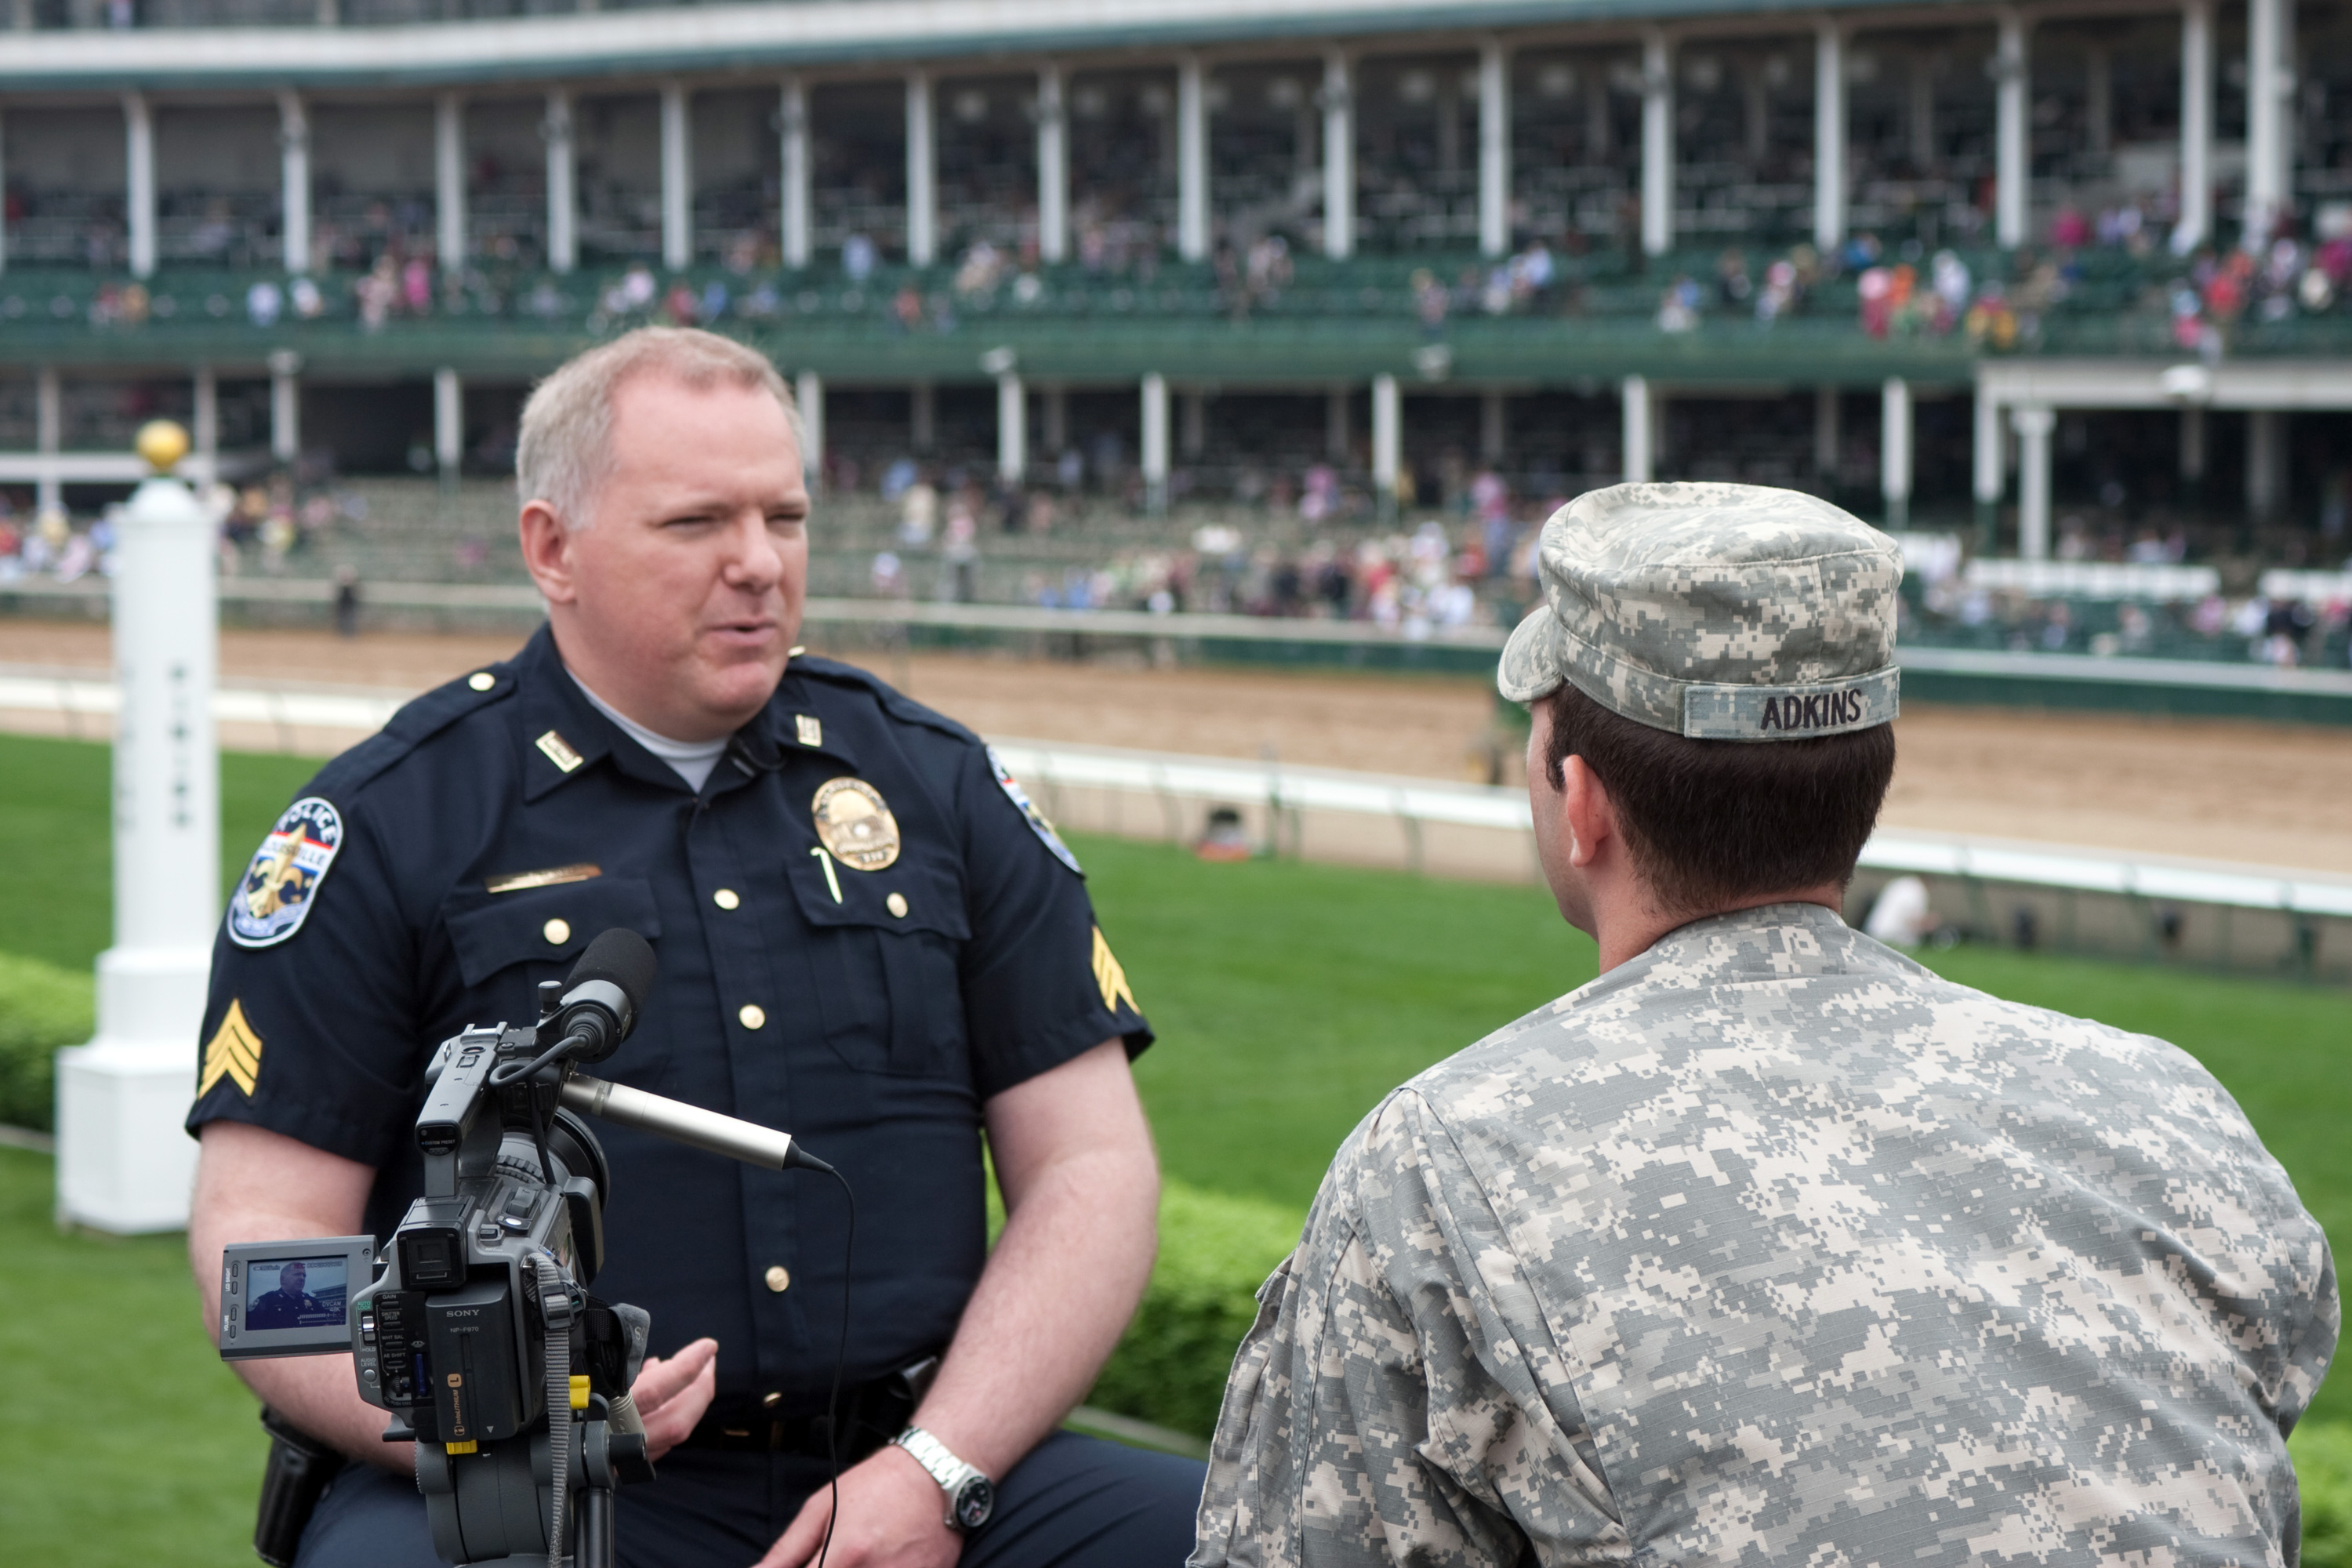 Kentucky Guardsmen prepare for this weekend's Derby